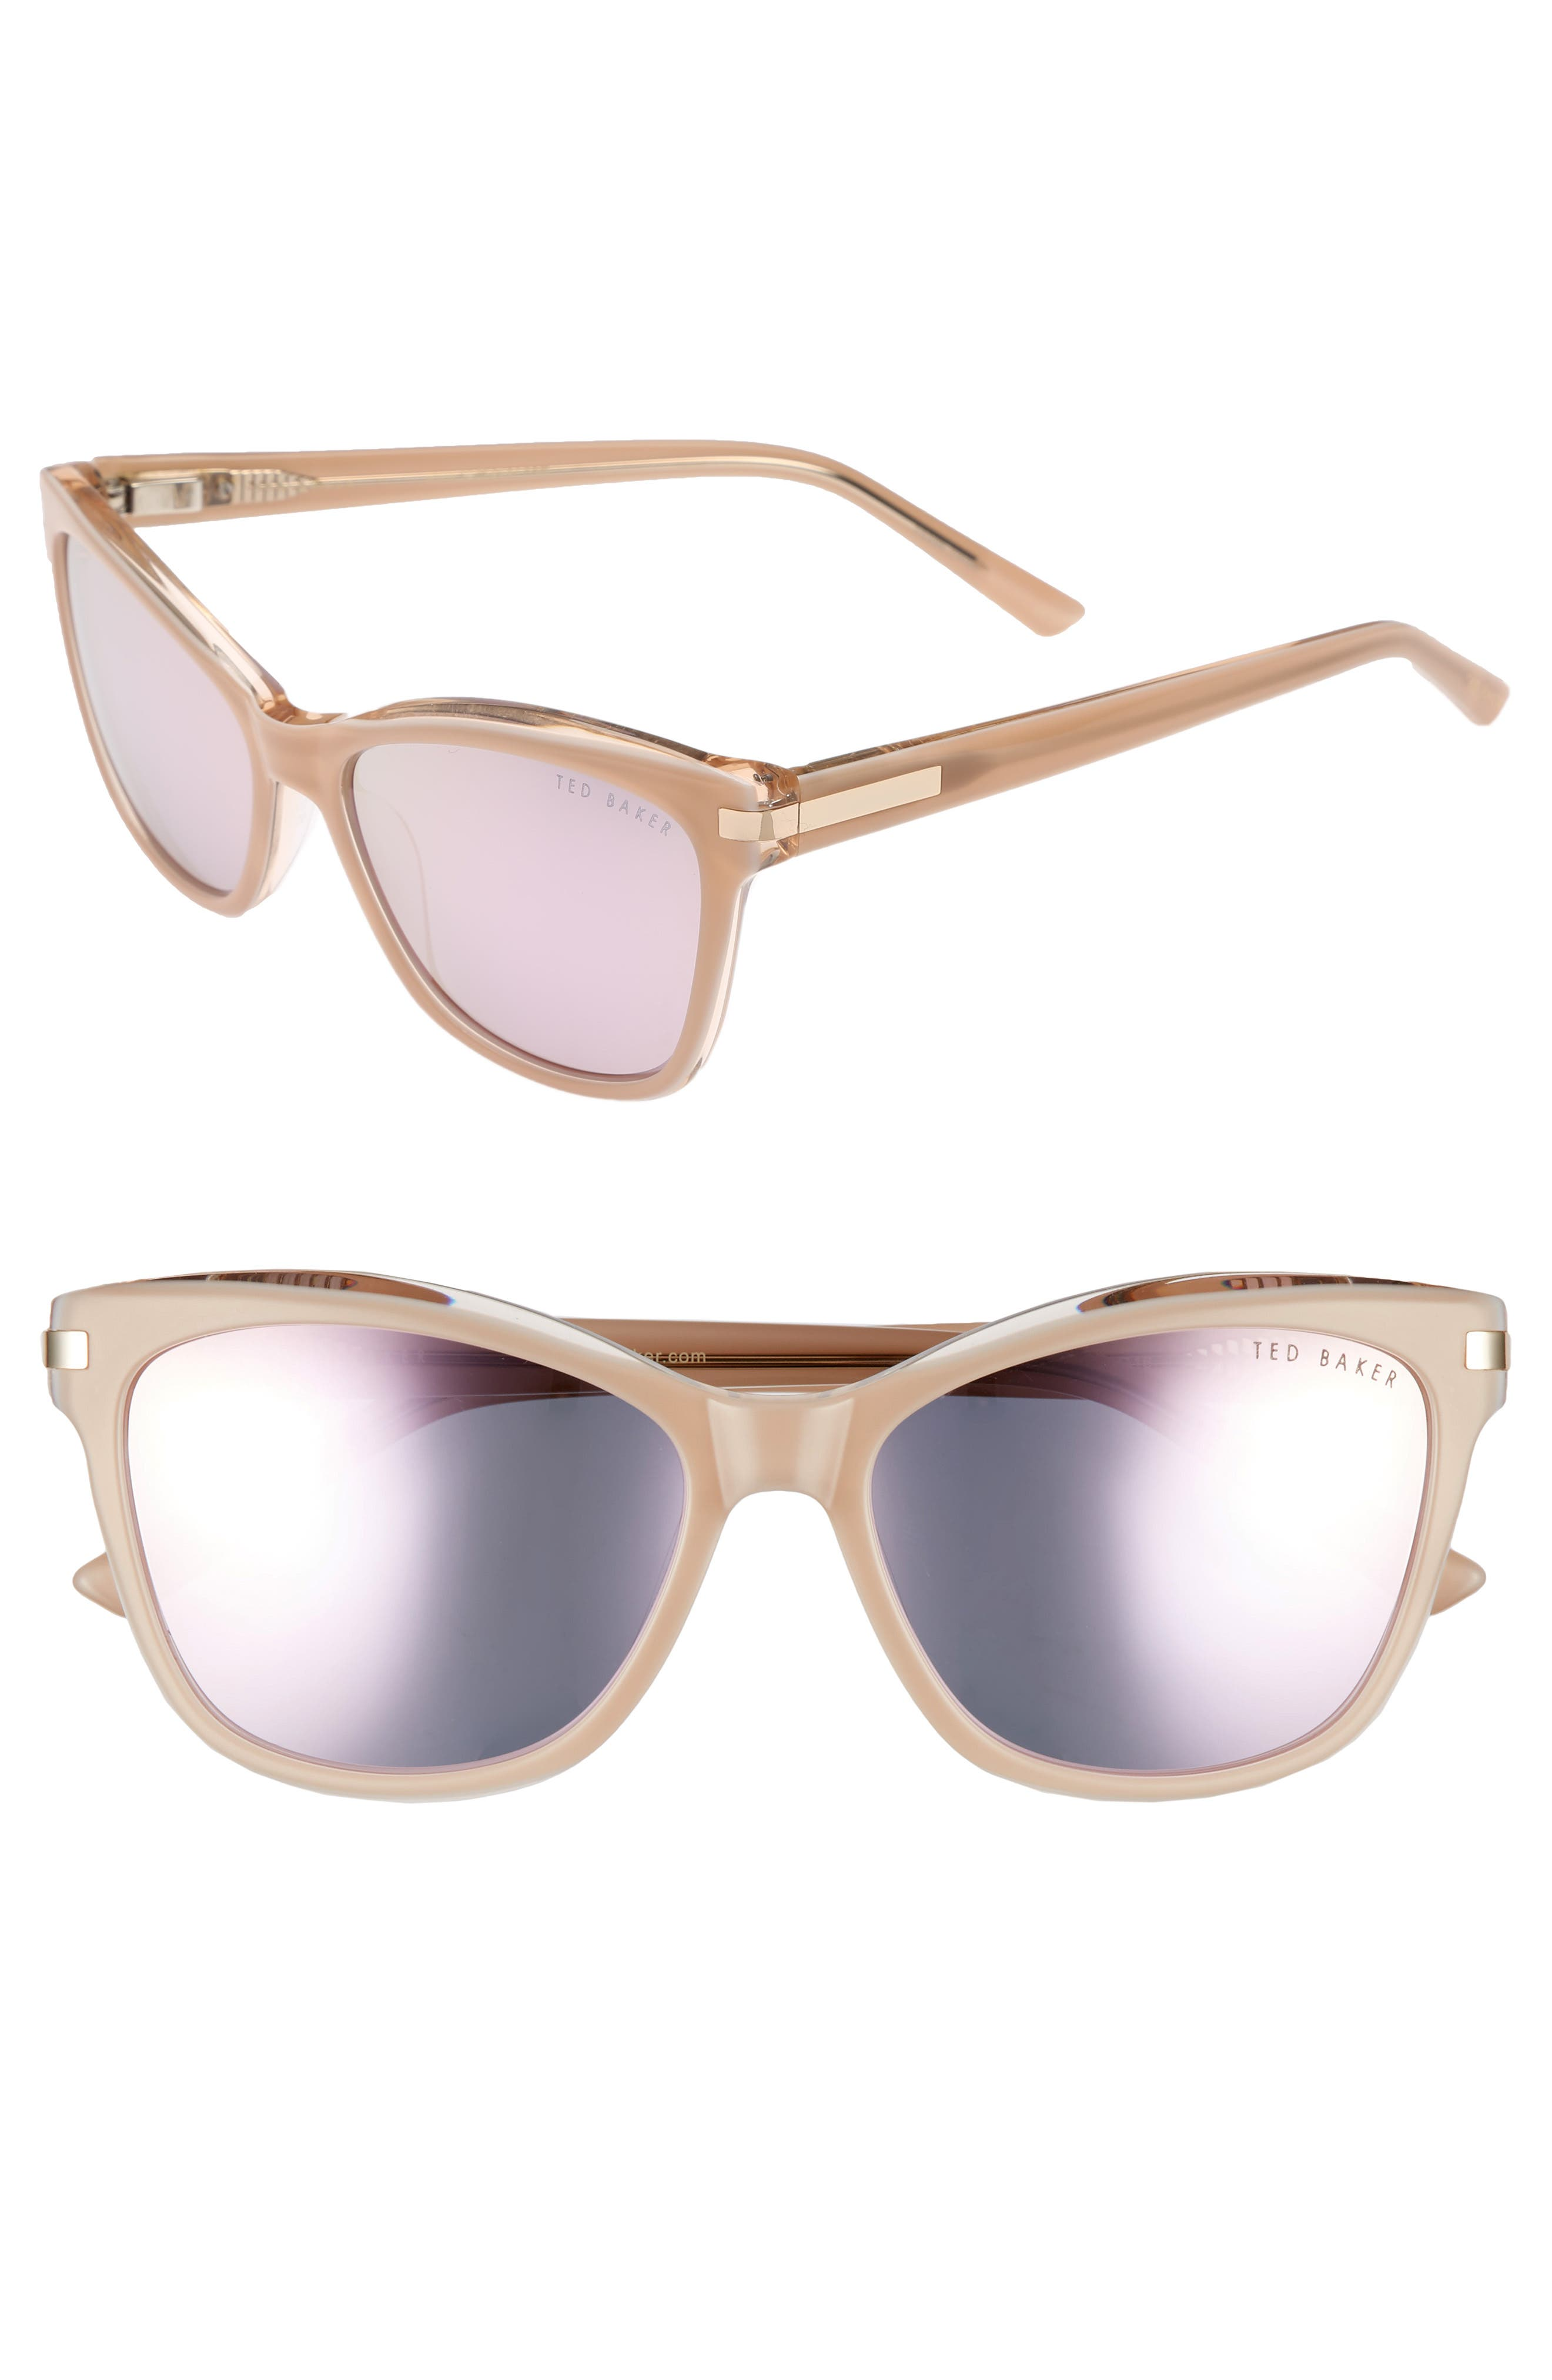 Alternate Image 1 Selected - Ted Baker London 56mm Cat Eye Sunglasses